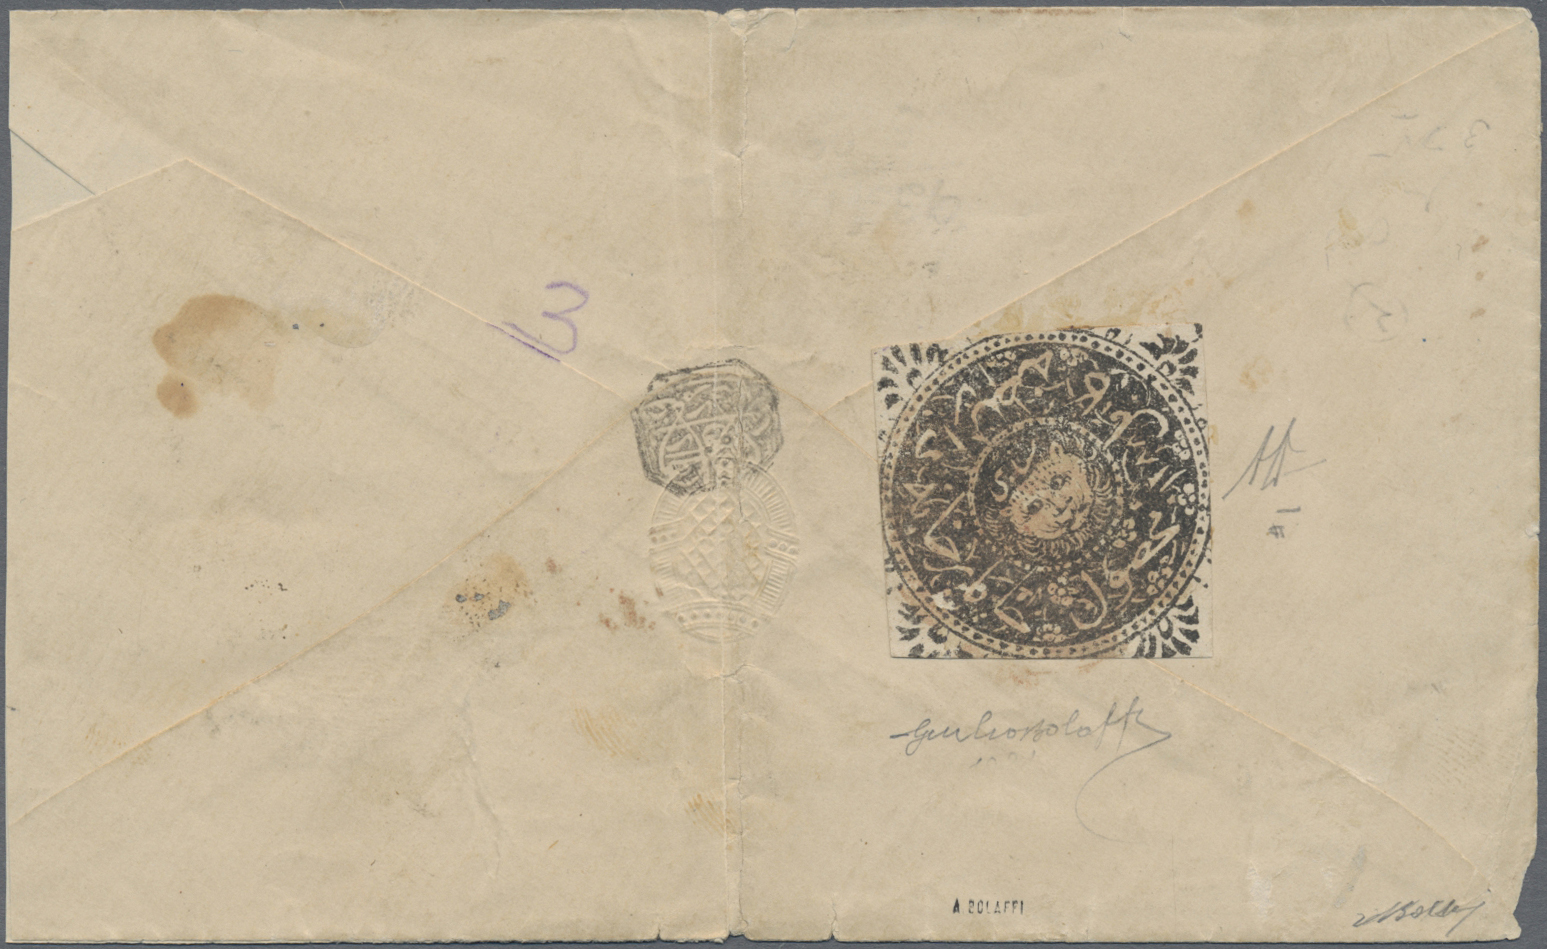 Lot 02007 - Afghanistan  -  Auktionshaus Christoph Gärtner GmbH & Co. KG 51th Auction - Day 2